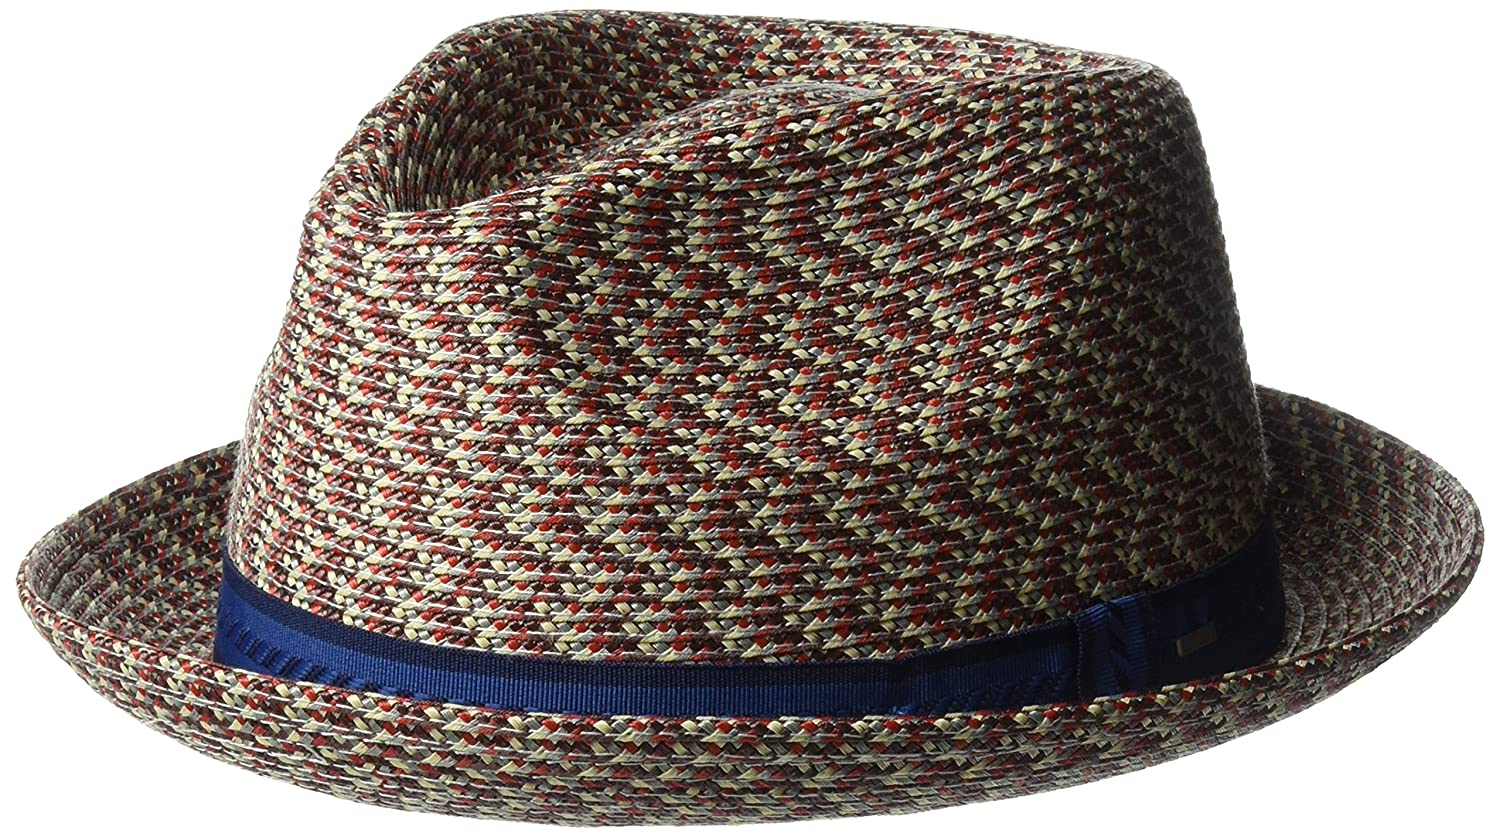 Bailey of Hollywood Mens Standard Mannes Braided Fedora Trilby Hat 81690